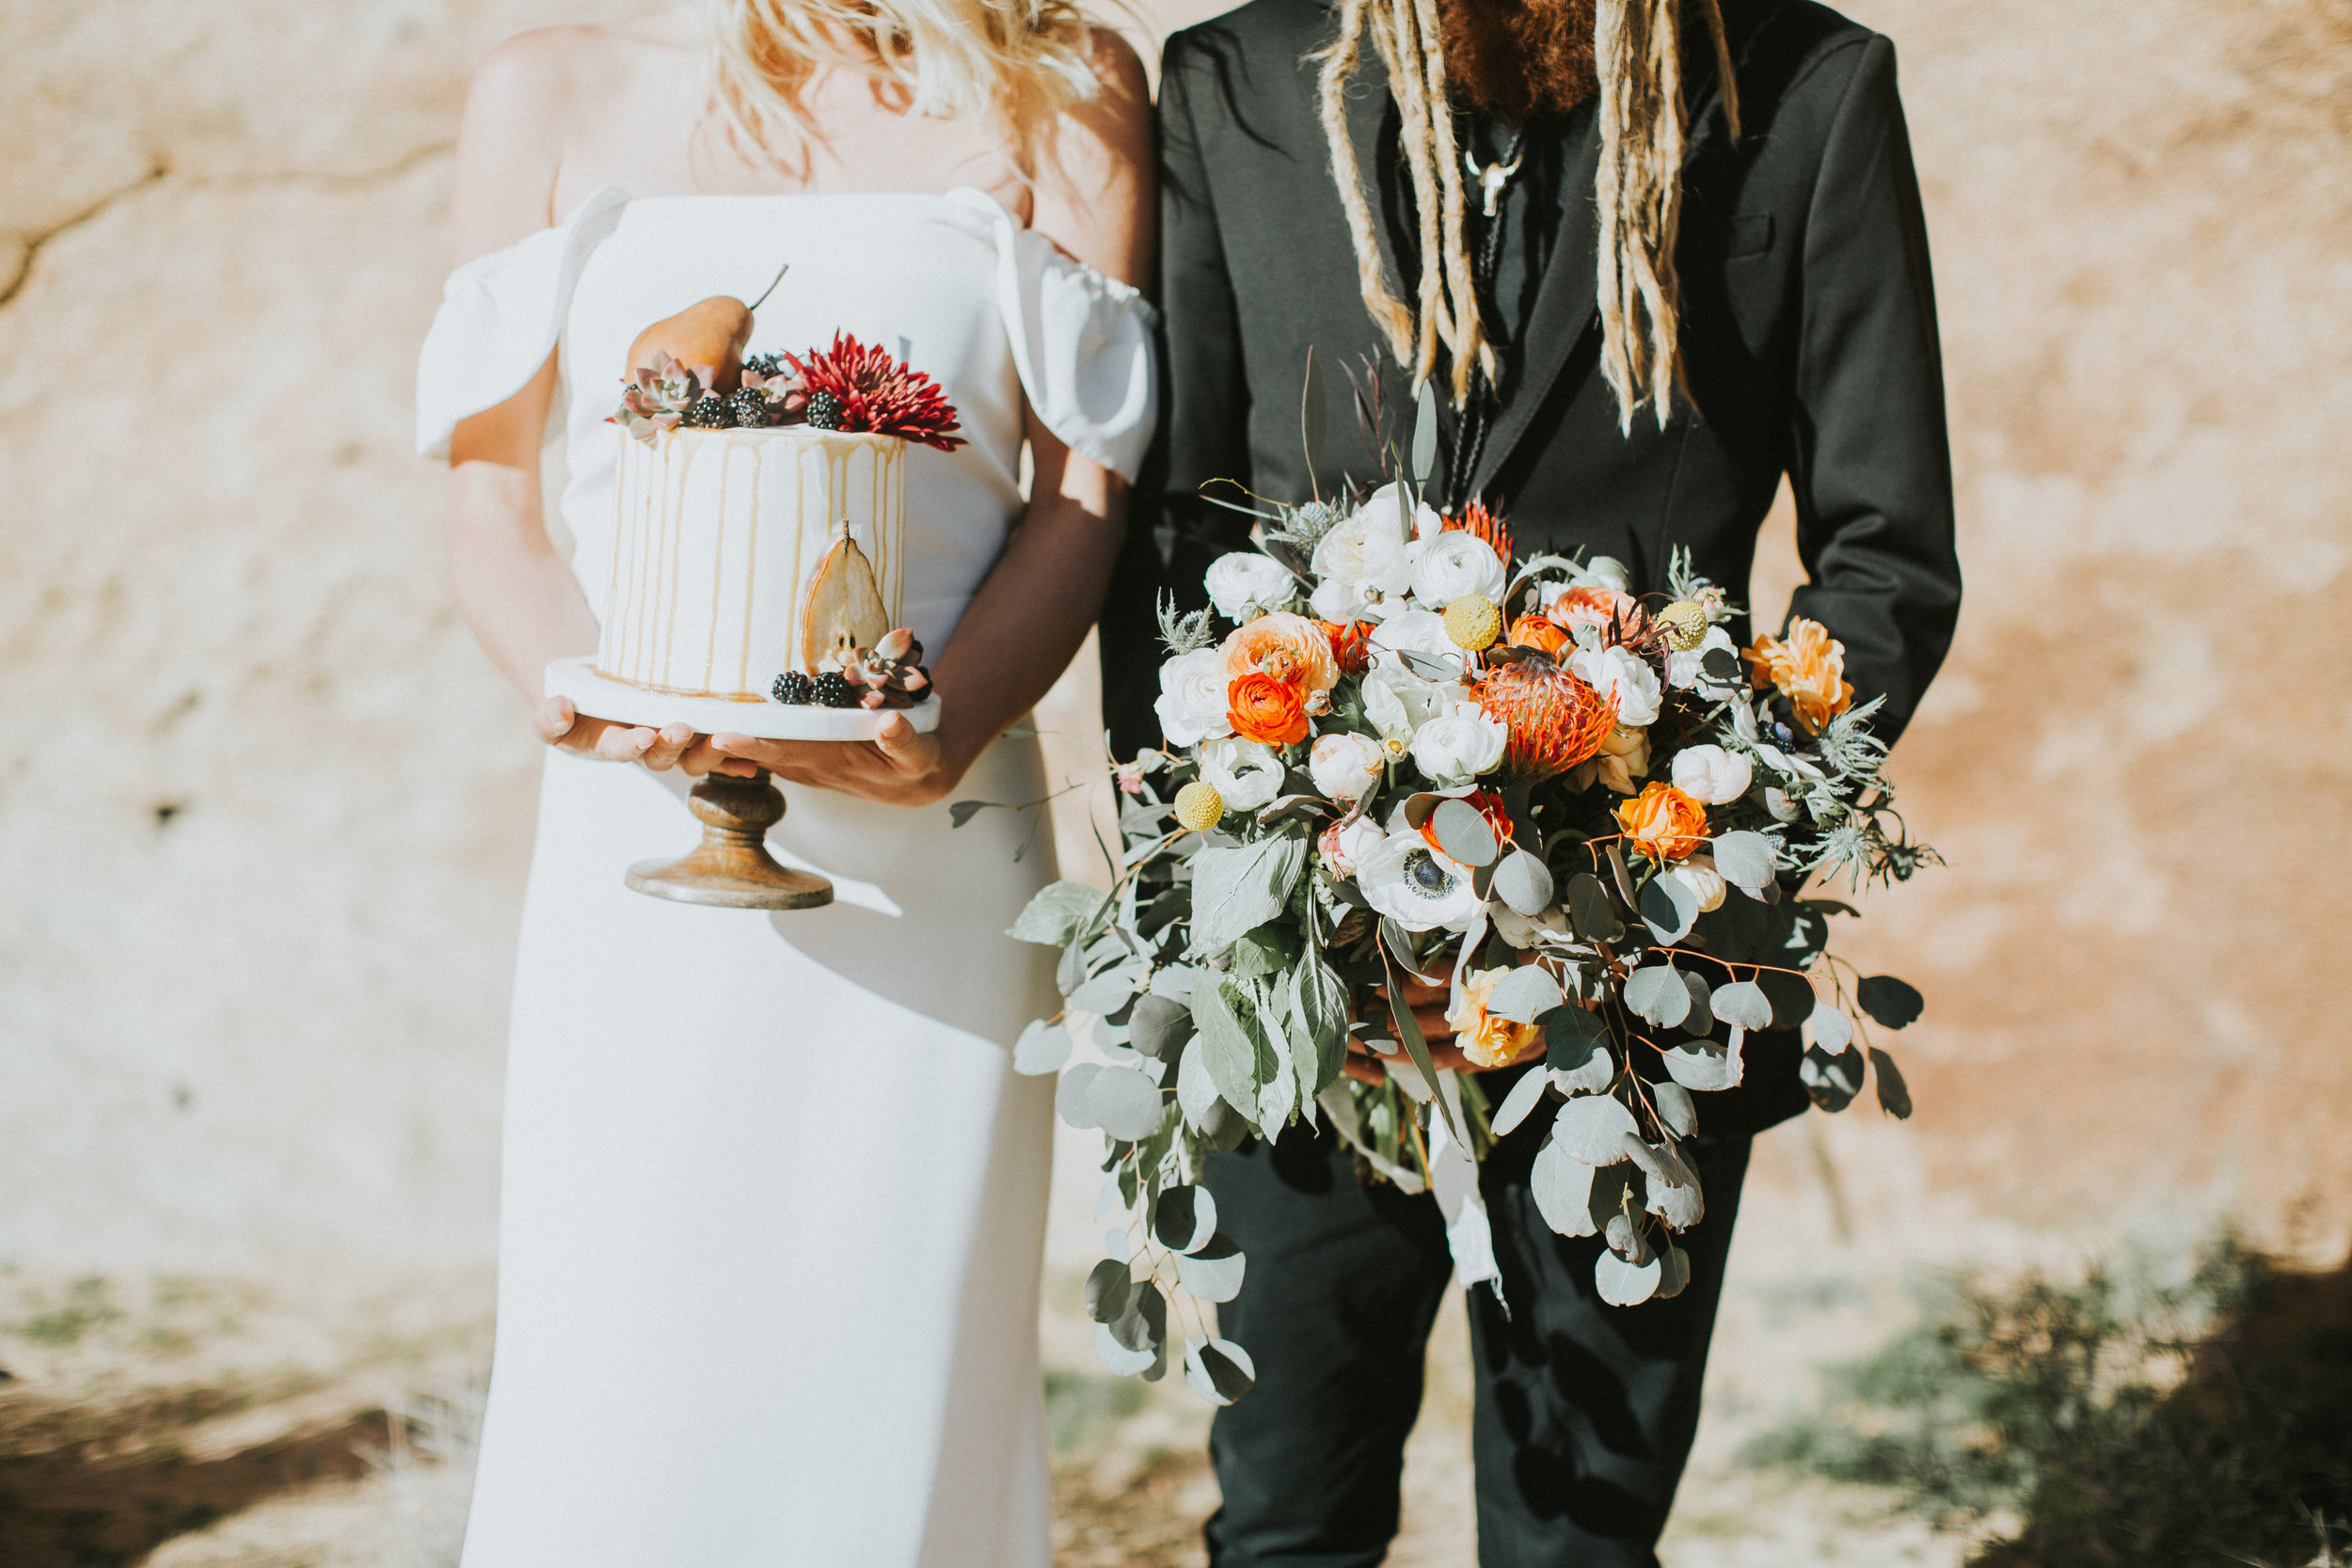 BOHO DESERT ELOPEMENT: STYLED SHOOT